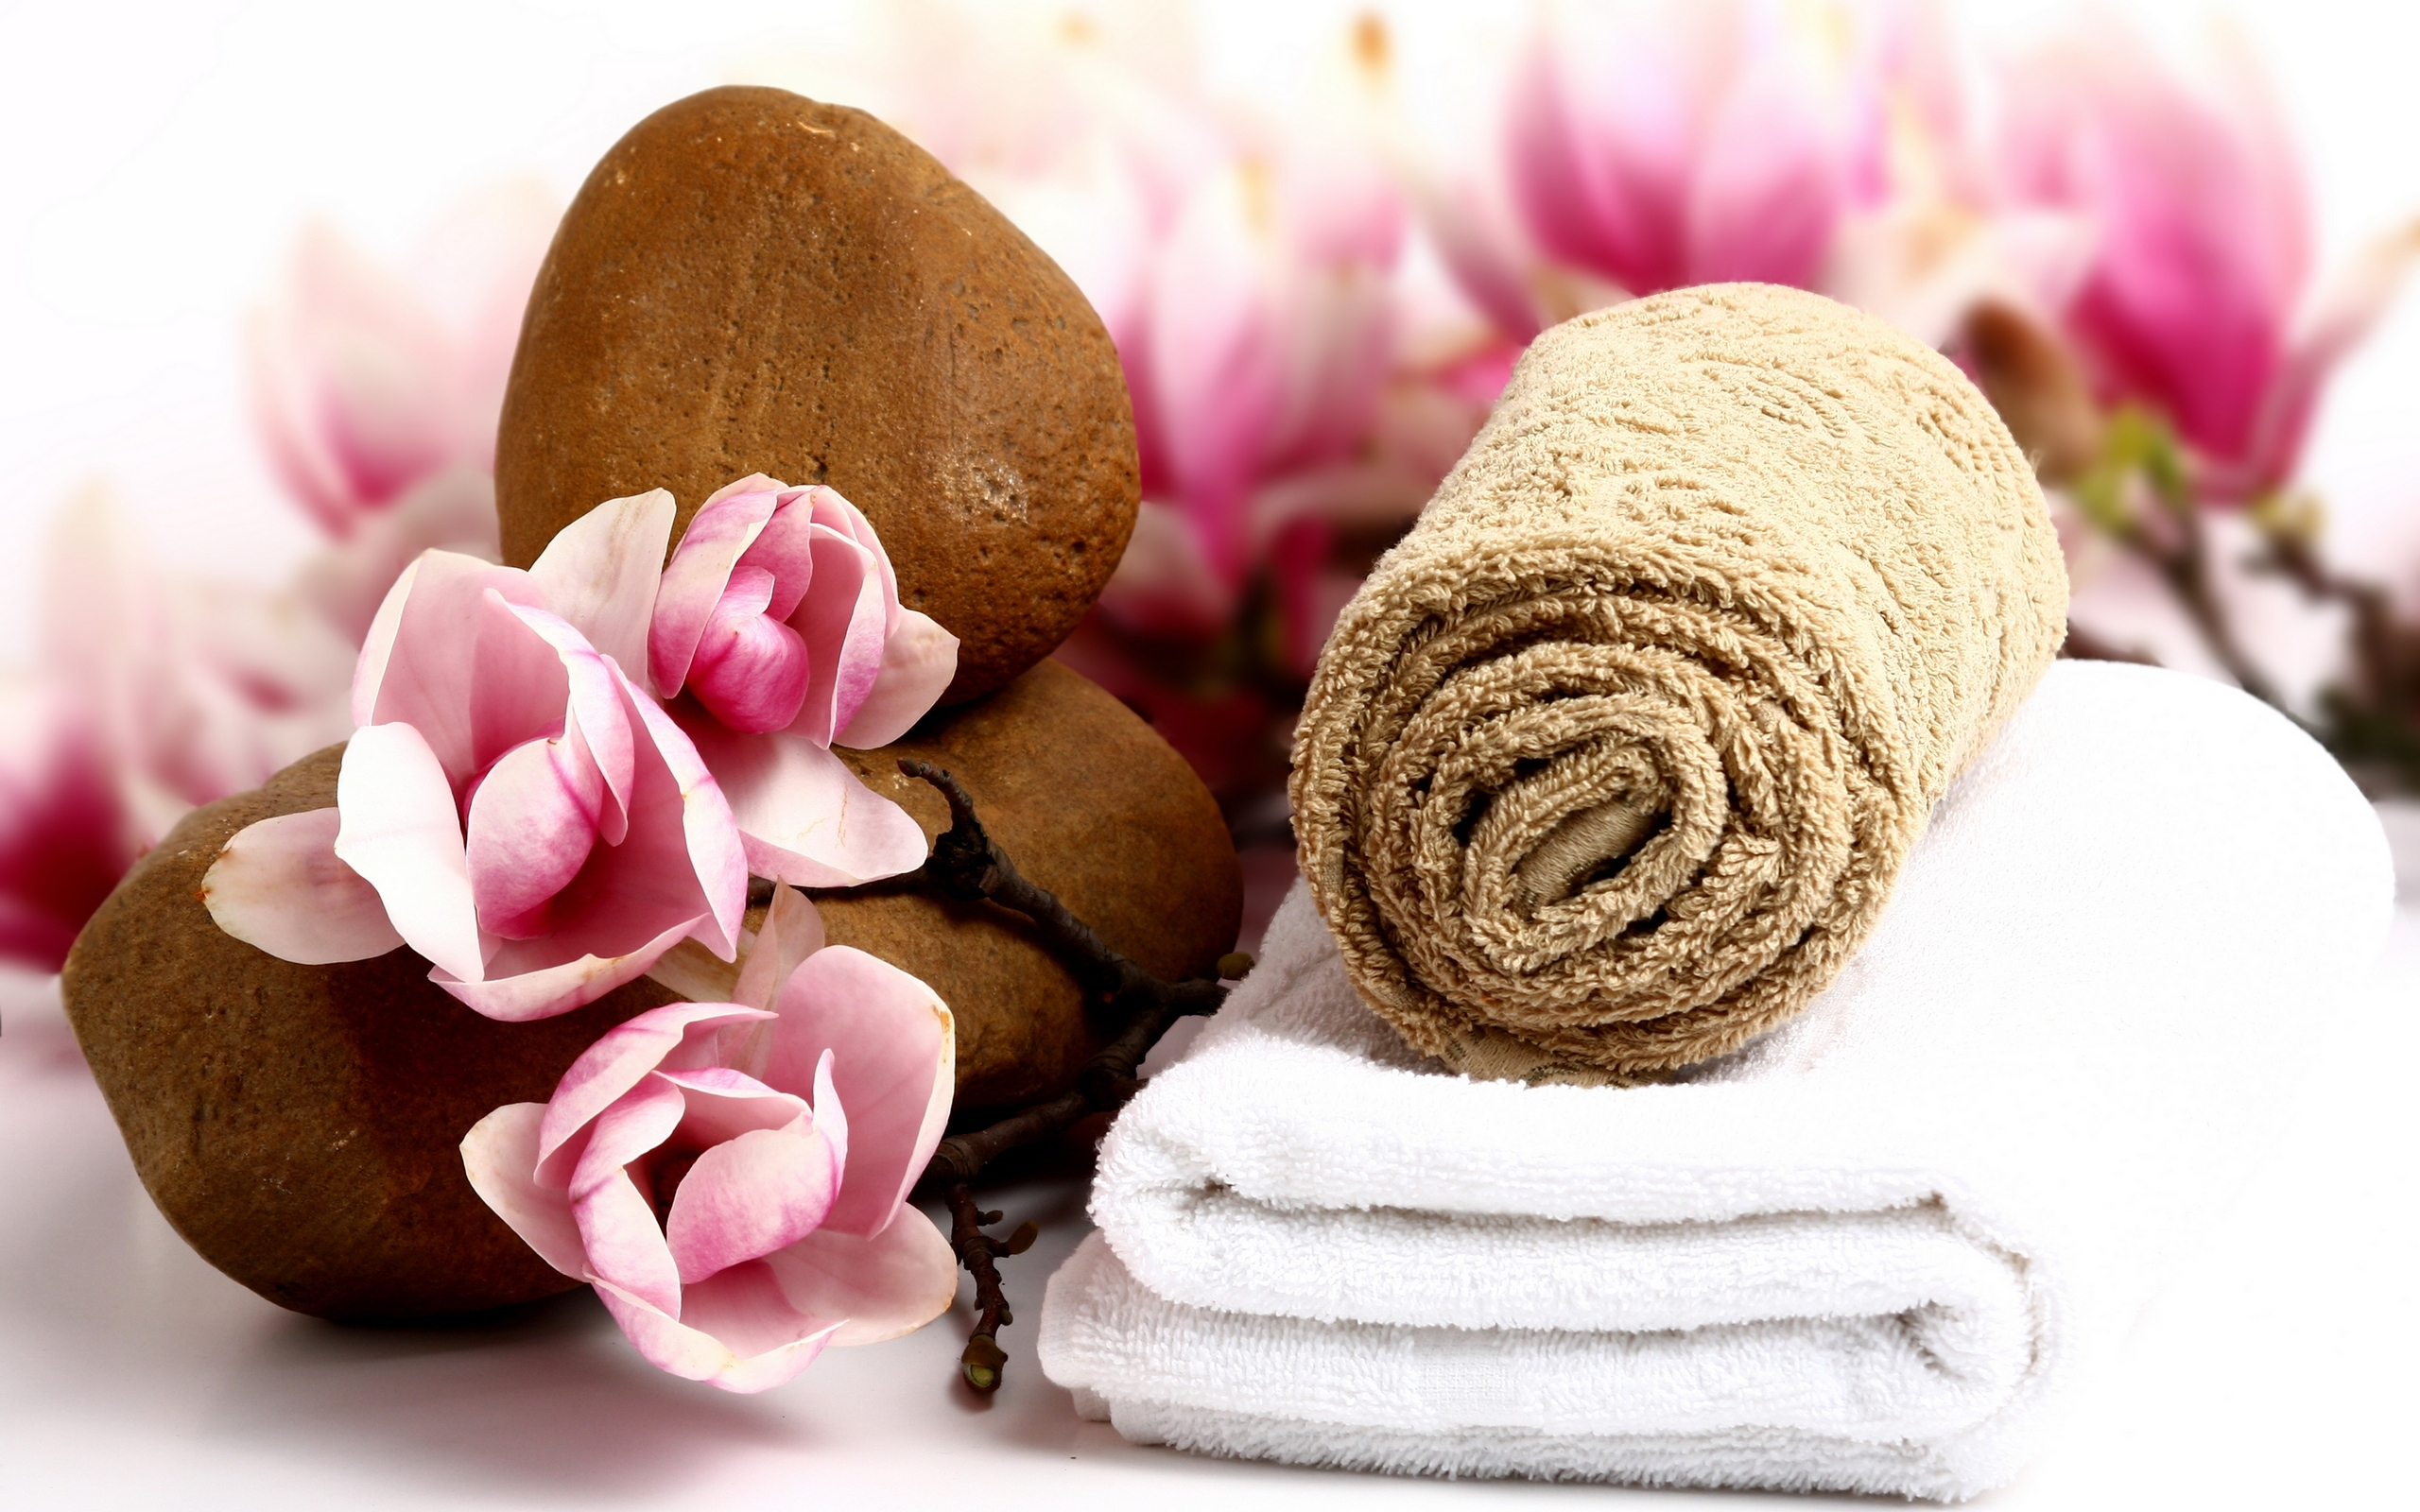 Spa full hd wallpaper and background image 2560x1600 Salon wallpaper